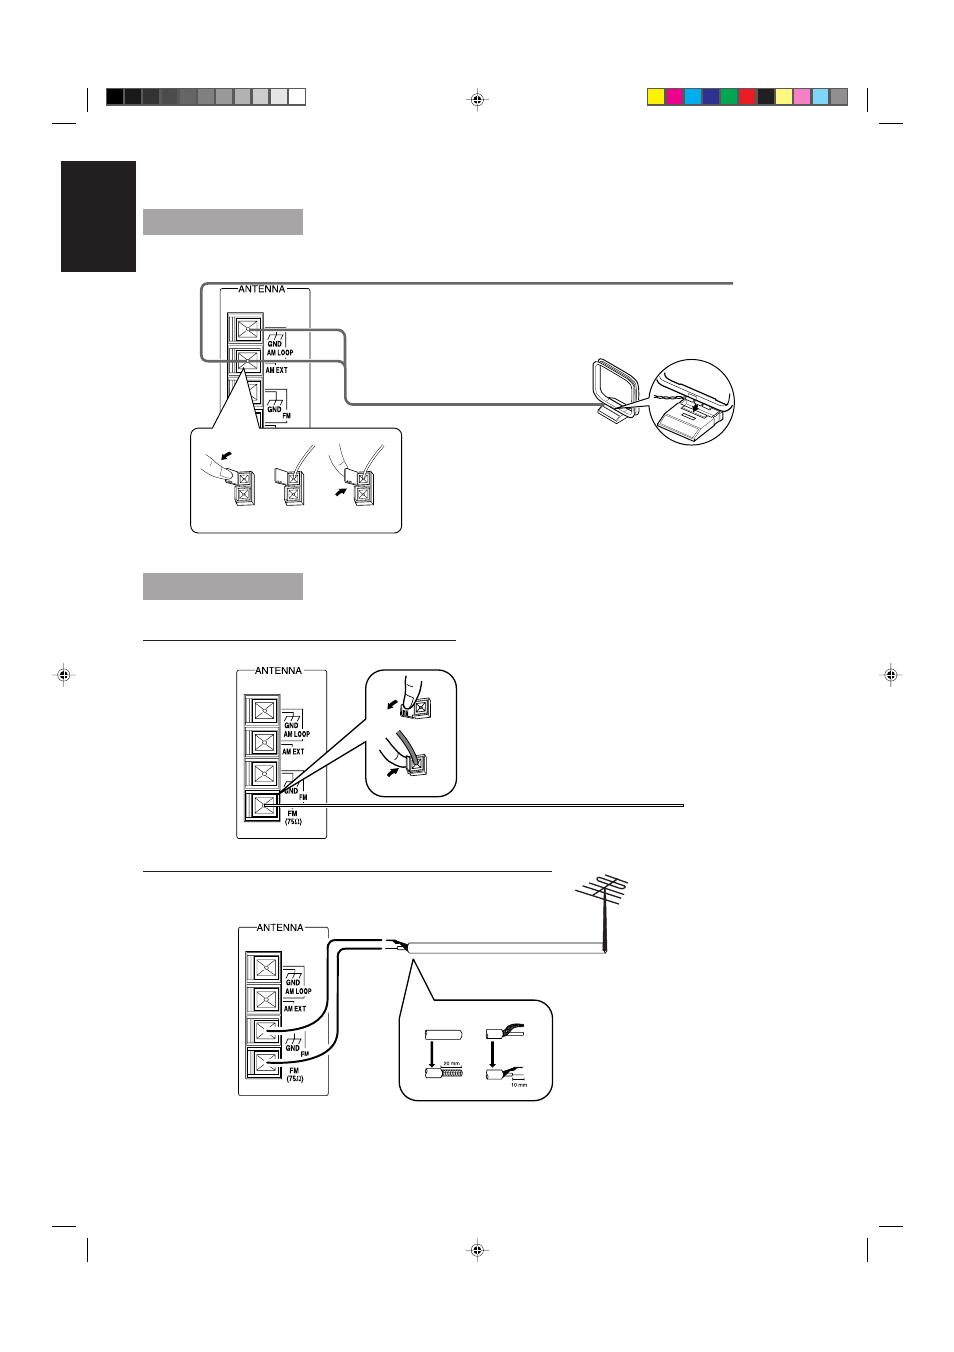 Connecting the am antenna, Connecting the fm antenna | JVC